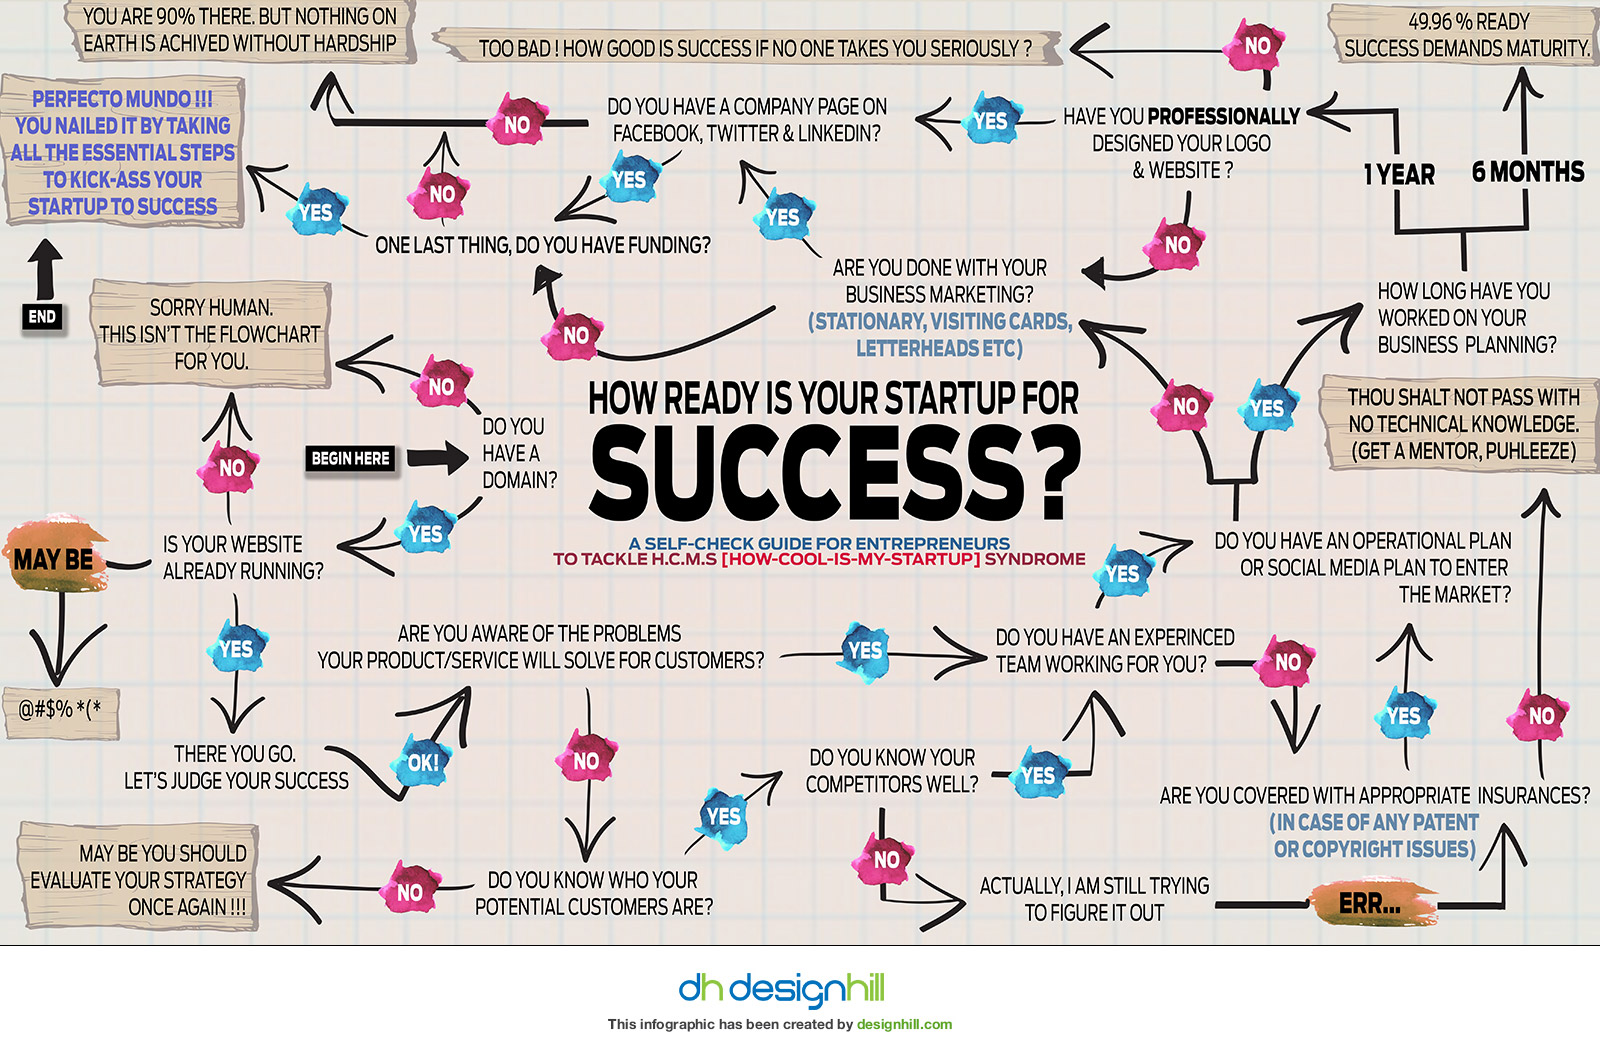 Quiz-how-ready-is-your-startup-for-success-Samrat-270815